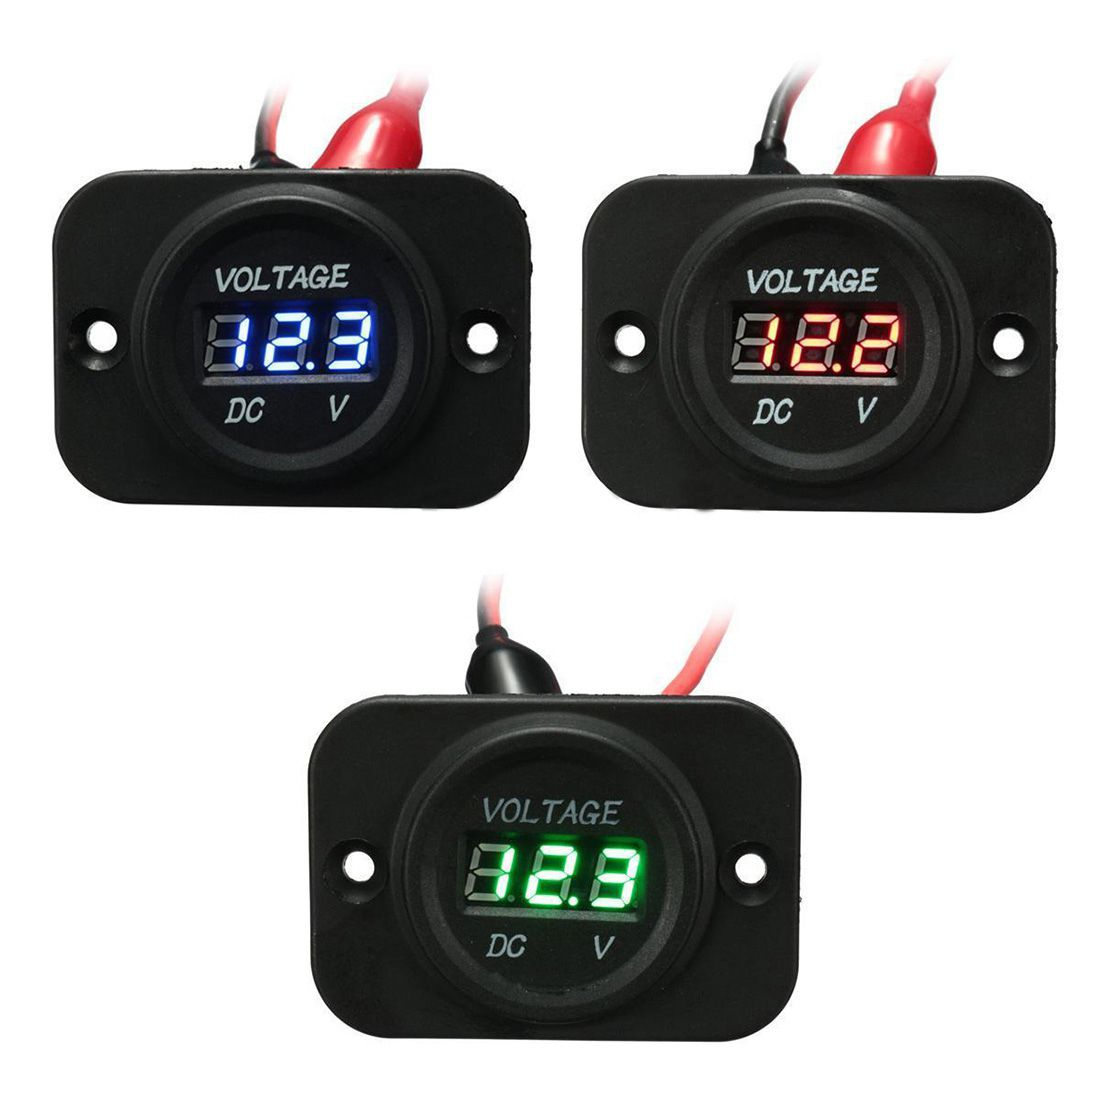 12v 24v Waterproof Car Motorcycle Led Digital Display Voltmeter Battery Volt Meter Small Charging Circuit Monitor With Compact Portable Design New Dc The Has Easy To Read And Connect Your 12 24